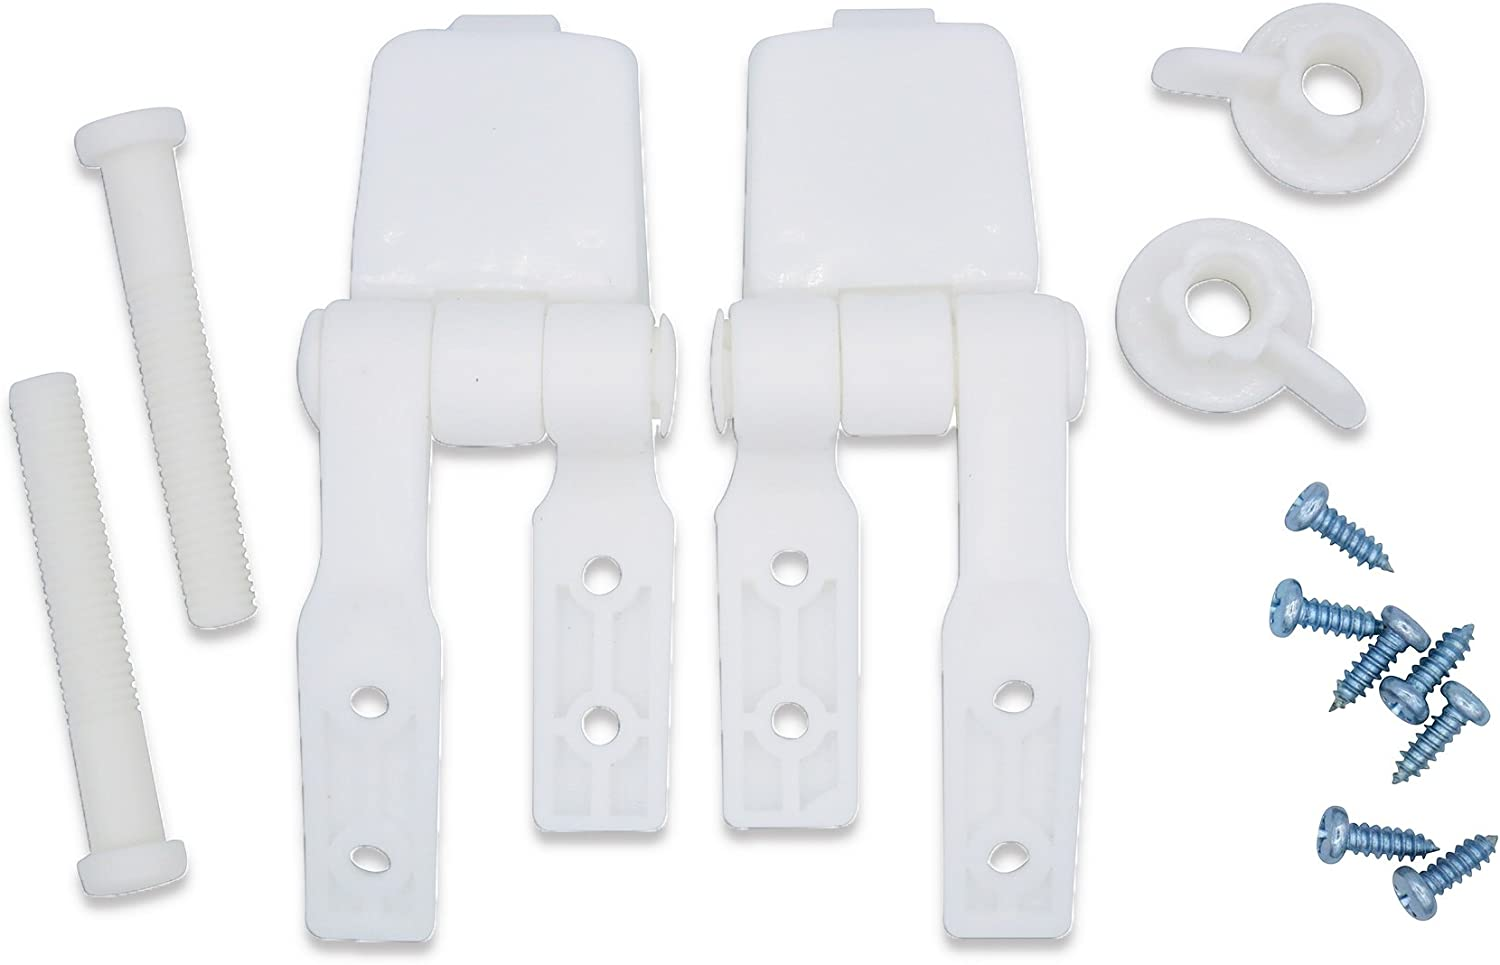 White Plastic Toilet Seat Hinge Replacement with Bolts Screw and